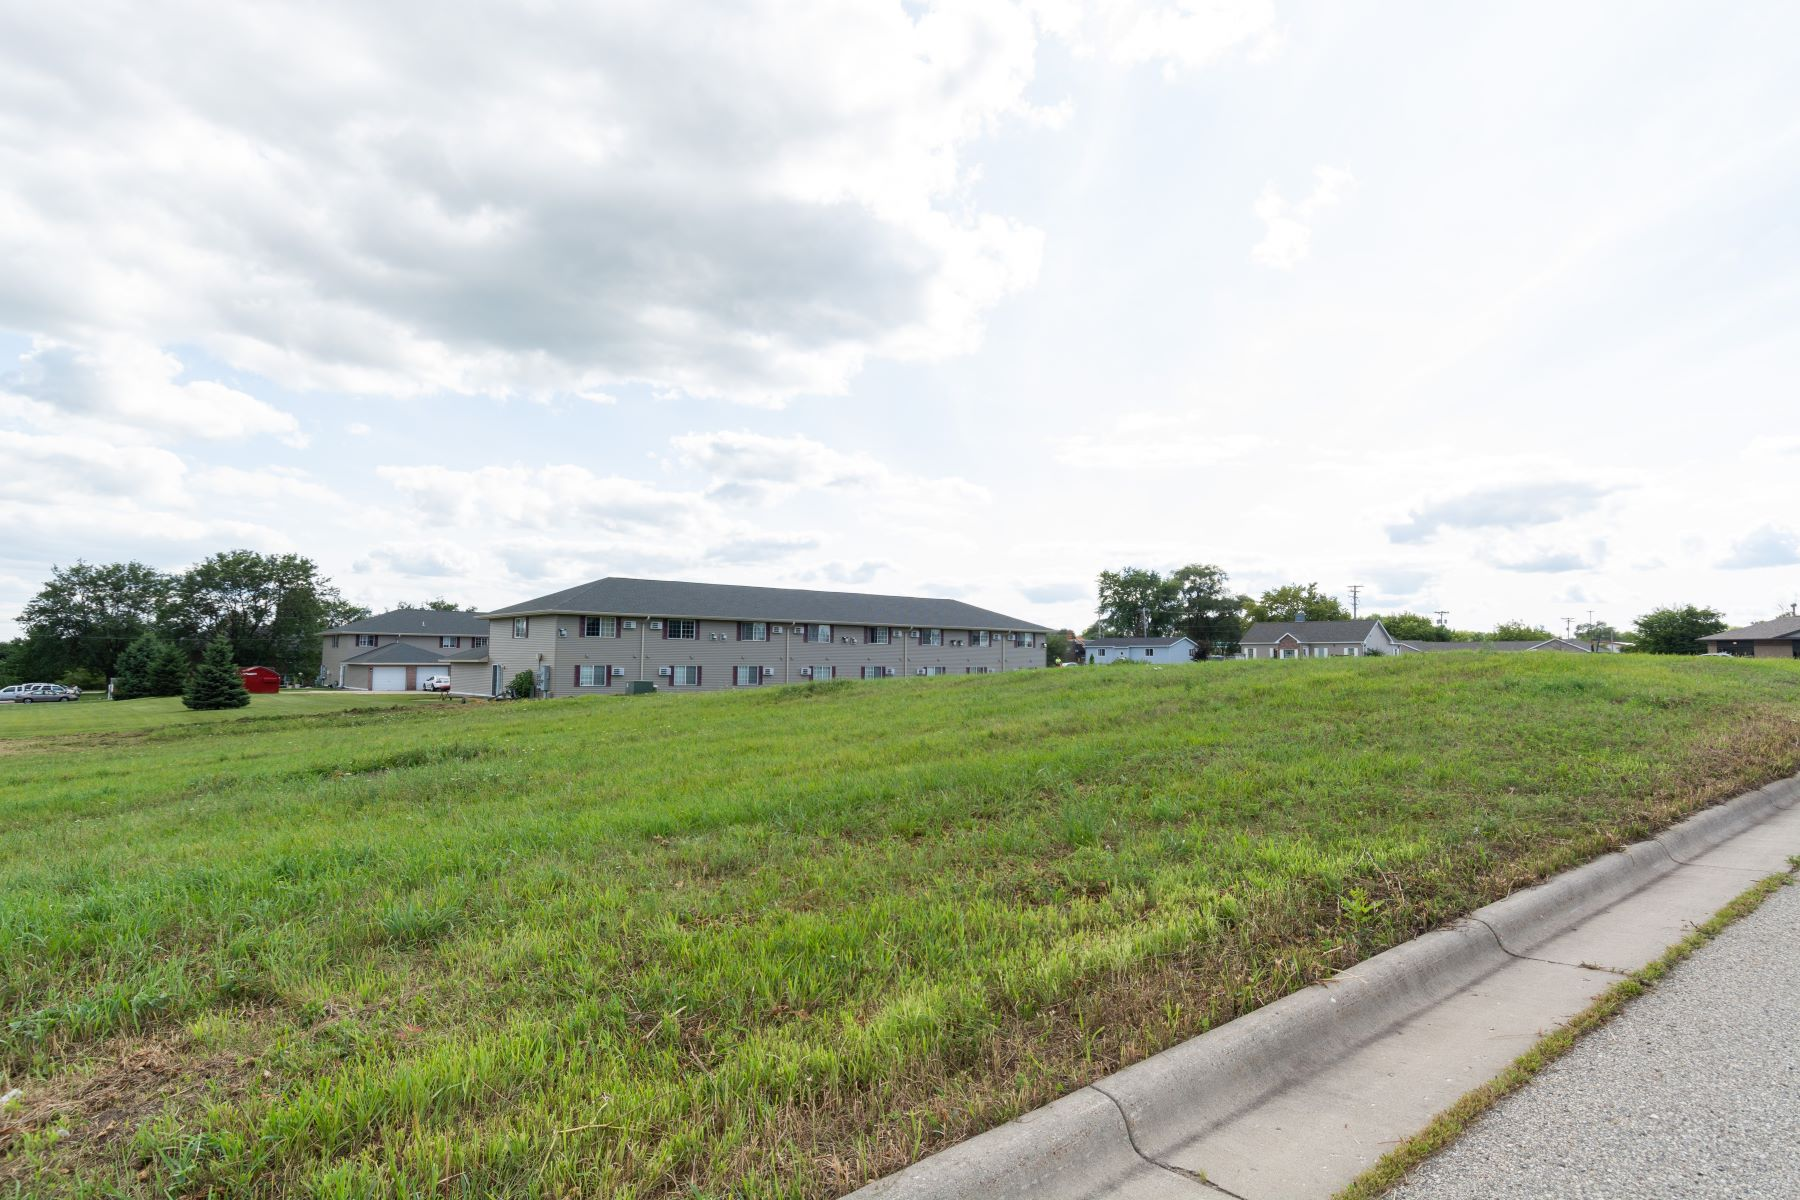 土地 為 出售 在 Multiunit Residential Development Opportunity 813-849 King Street, Janesville, 威斯康辛州 53546 美國